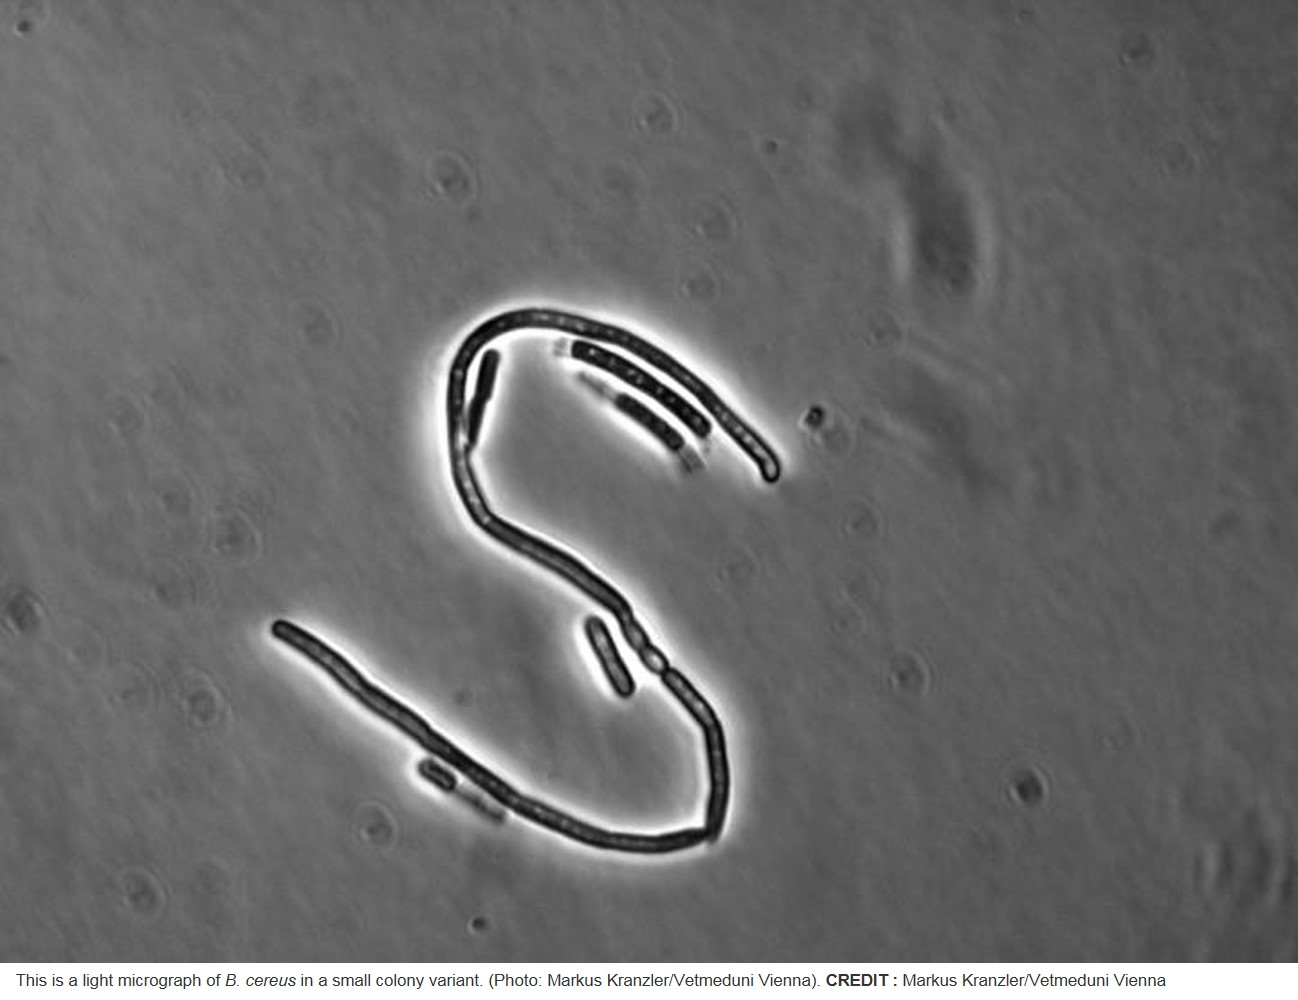 Resistance to antibiotic by Bacillus cereus